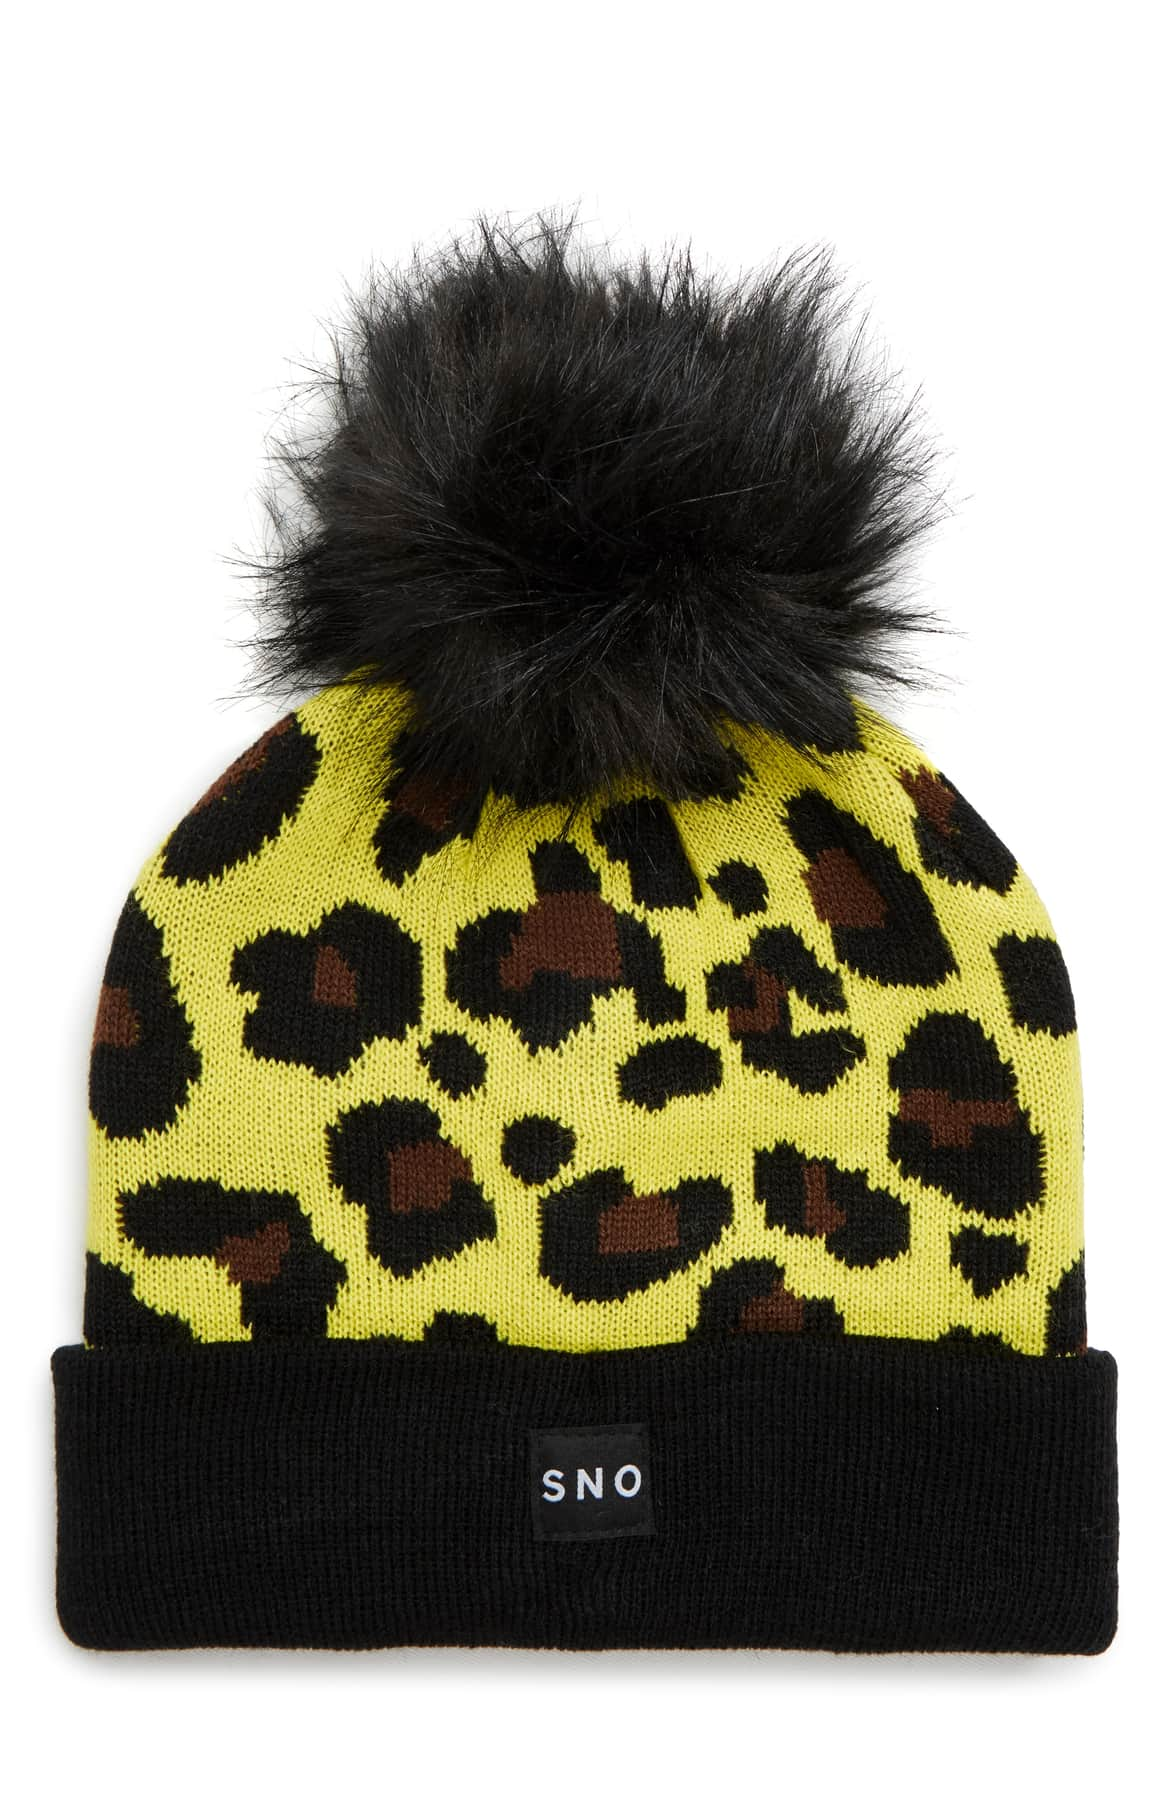 <p>This bright yellow beanie goes glam with leopard spots and a fluffy faux-fur pompom. $30.00 (Image: Nordstrom){&amp;nbsp;}</p><p></p>